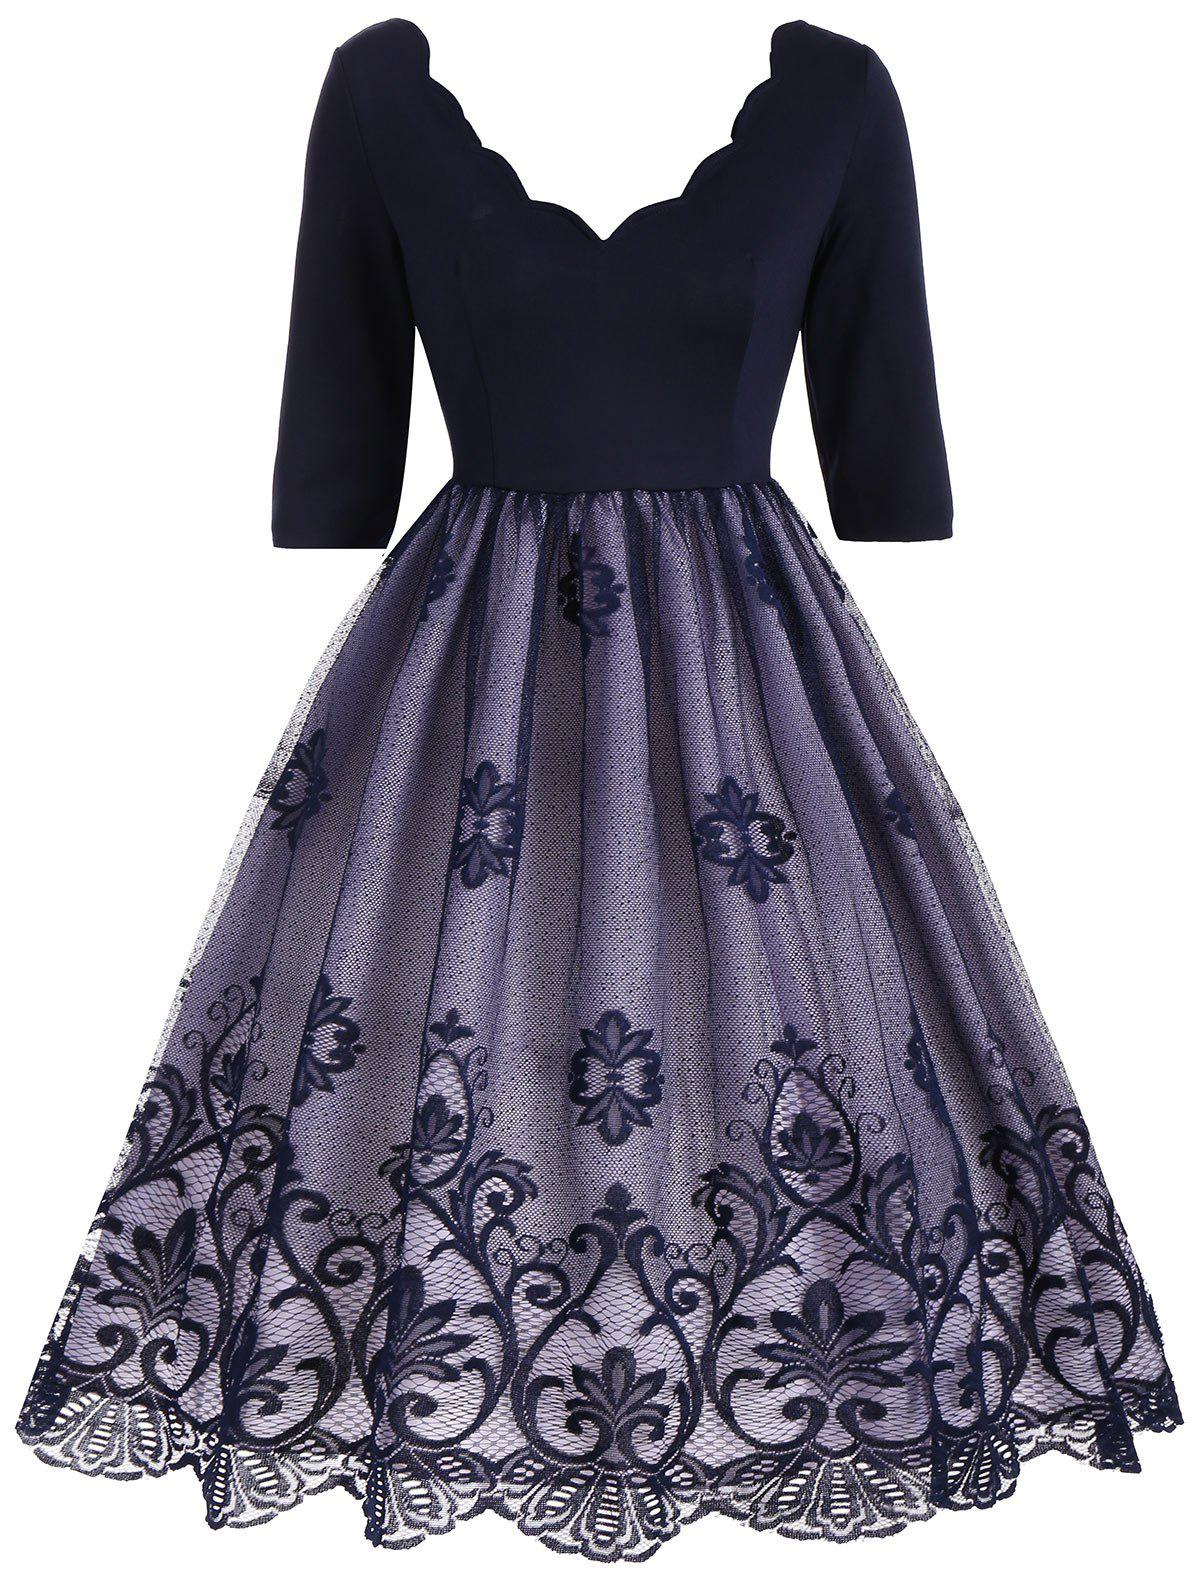 V Neck Floral Lace Panel Vintage DressWOMEN<br><br>Size: XL; Color: DEEP BLUE; Style: Vintage; Material: Cotton,Polyester; Silhouette: A-Line; Dresses Length: Knee-Length; Neckline: V-Neck; Sleeve Length: Half Sleeves; Embellishment: Lace; Pattern Type: Solid; With Belt: No; Season: Fall; Weight: 0.3800kg; Package Contents: 1 x Dress;